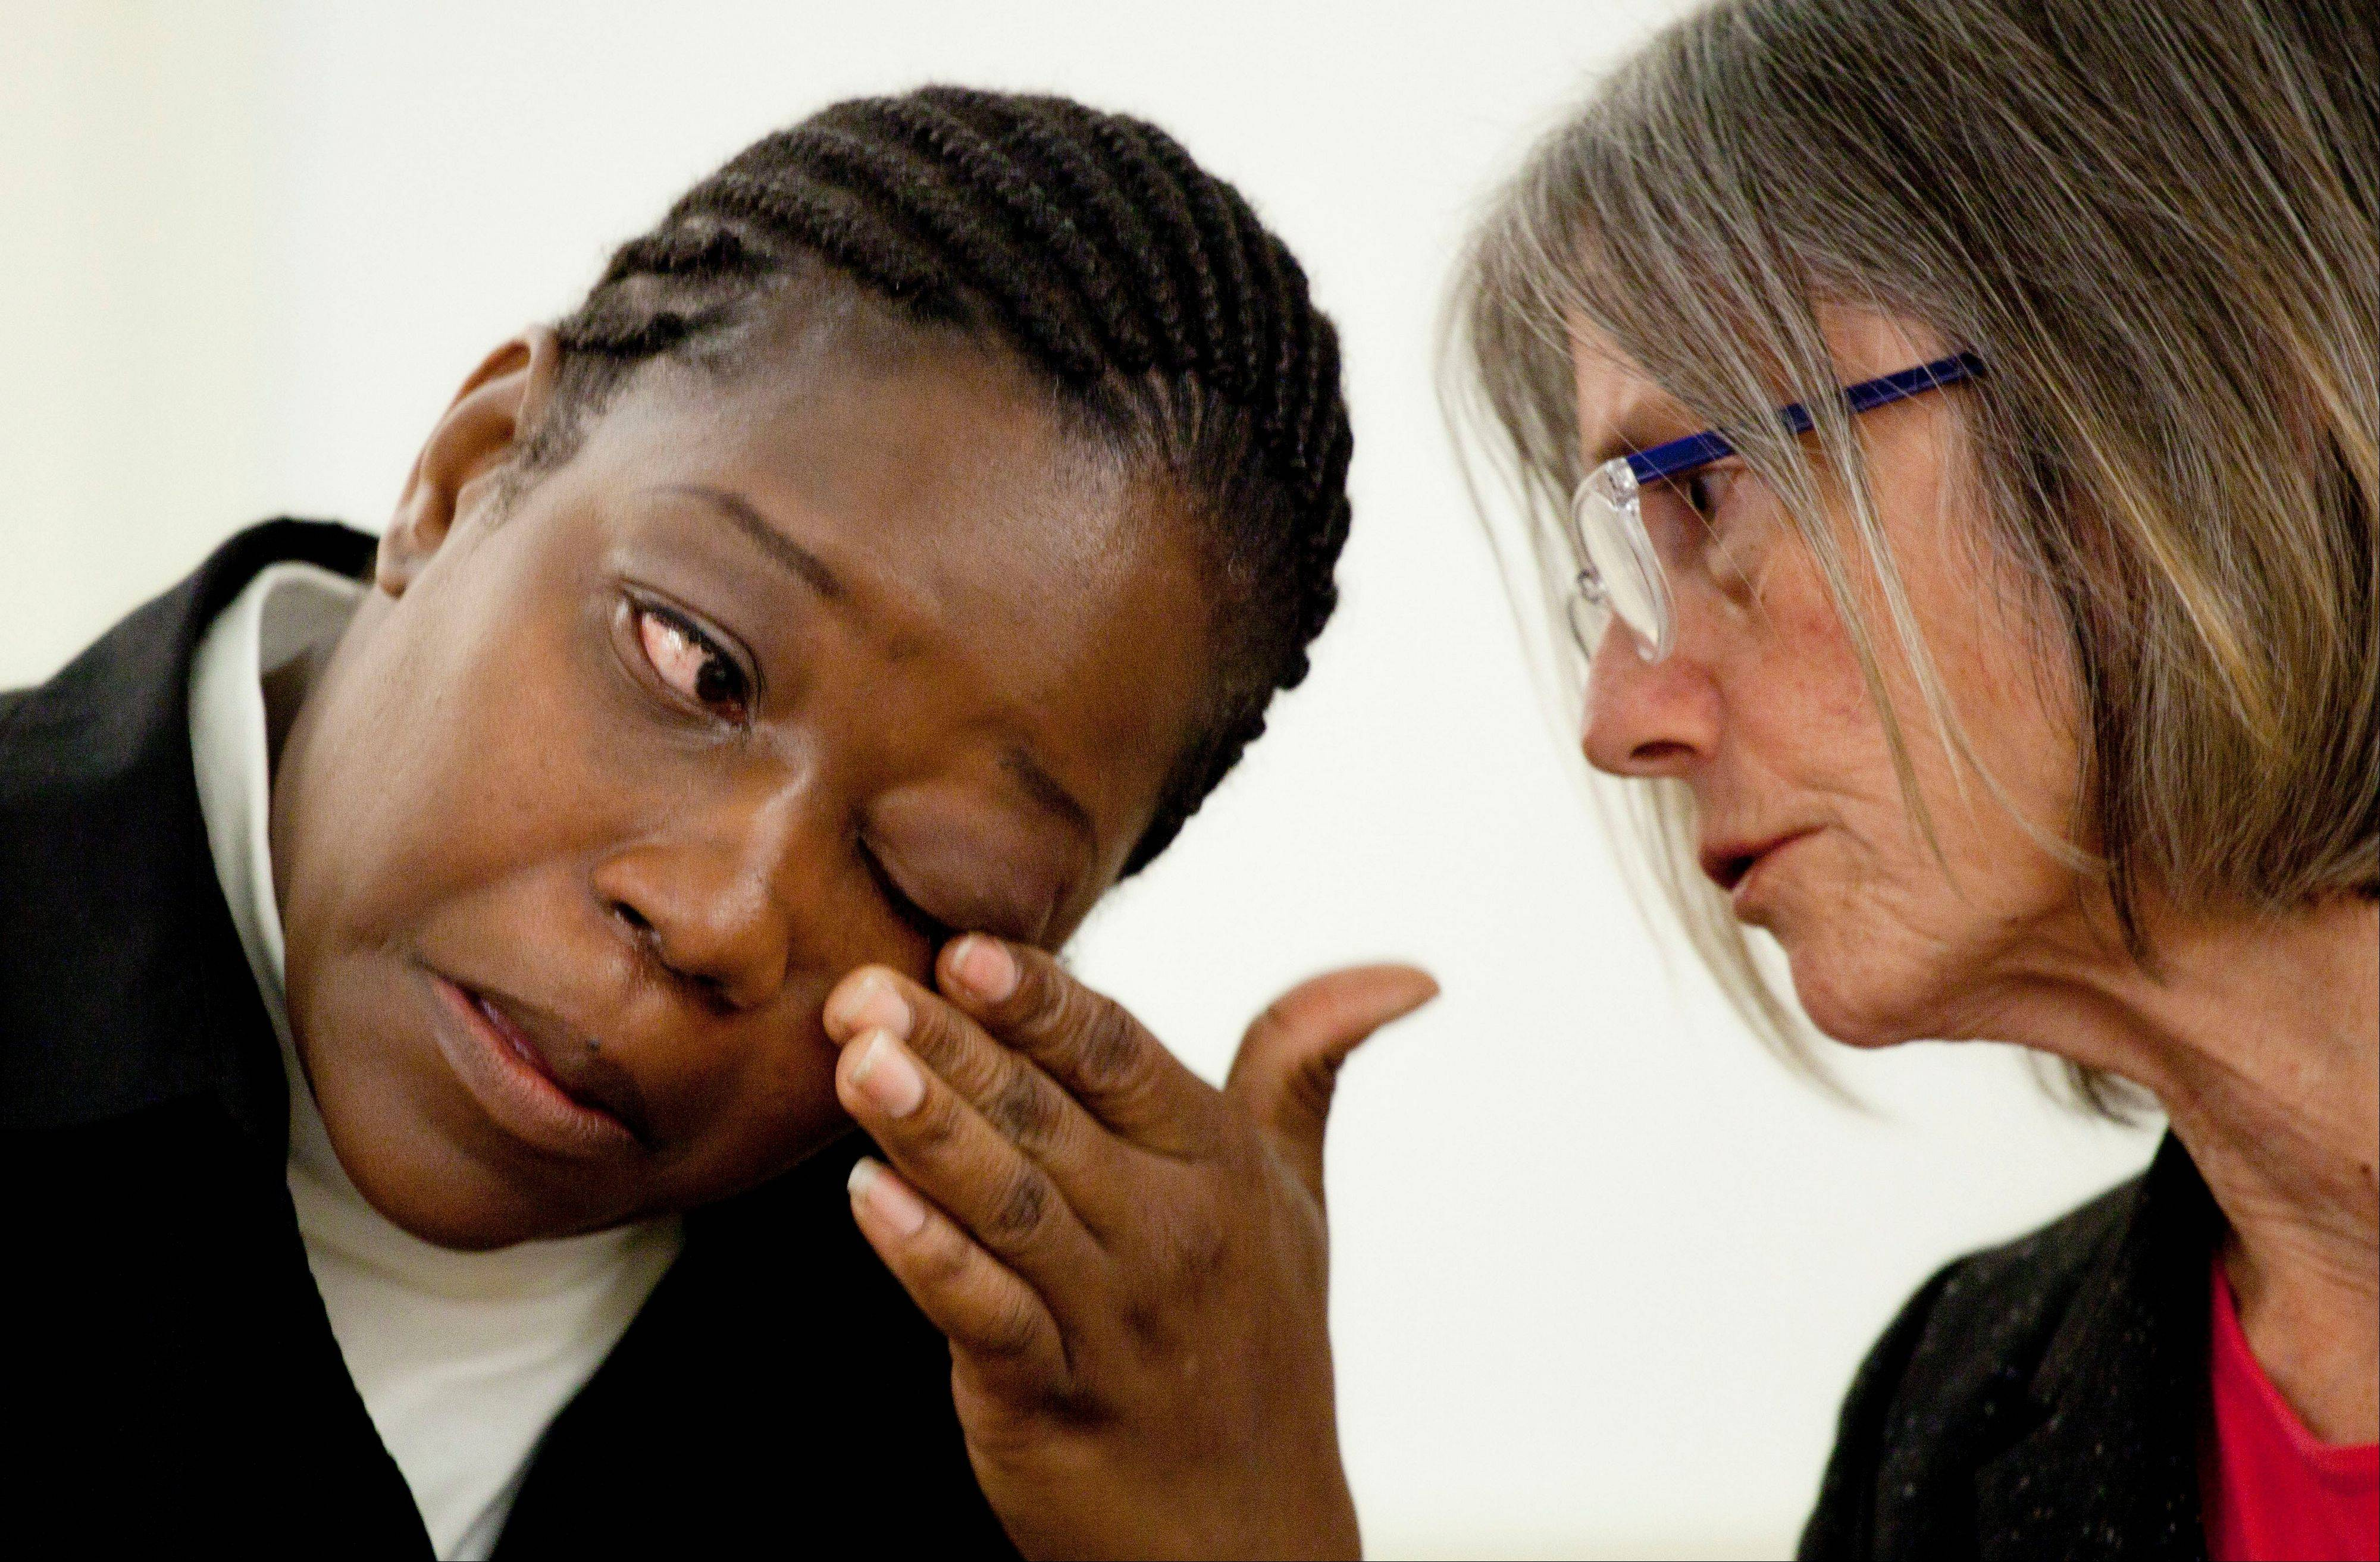 Rubbie McCoy, left, a plaintiff in a lawsuit filed against Morgan Stanley, reacts while describing her housing situation during a news conference Monday in New York. With her is attorney Elizabeth Cabraser. McCoy and four other Detroit homeowners have filed a lawsuit claiming Morgan Stanley discriminated against black homeowners and violated federal civil rights laws.